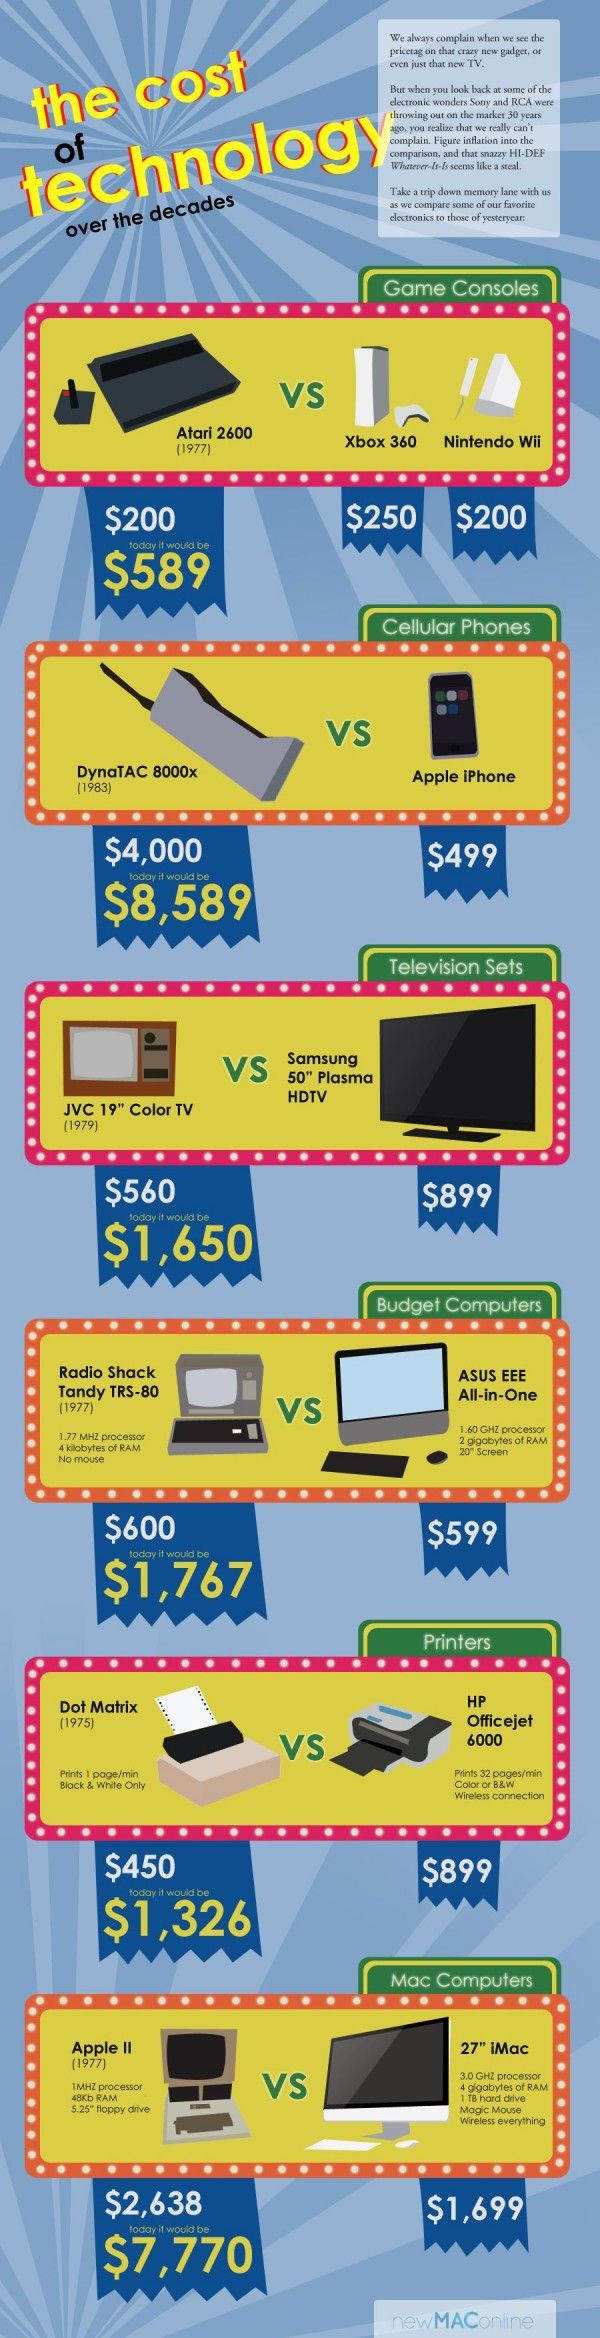 The cost of technology over the decades